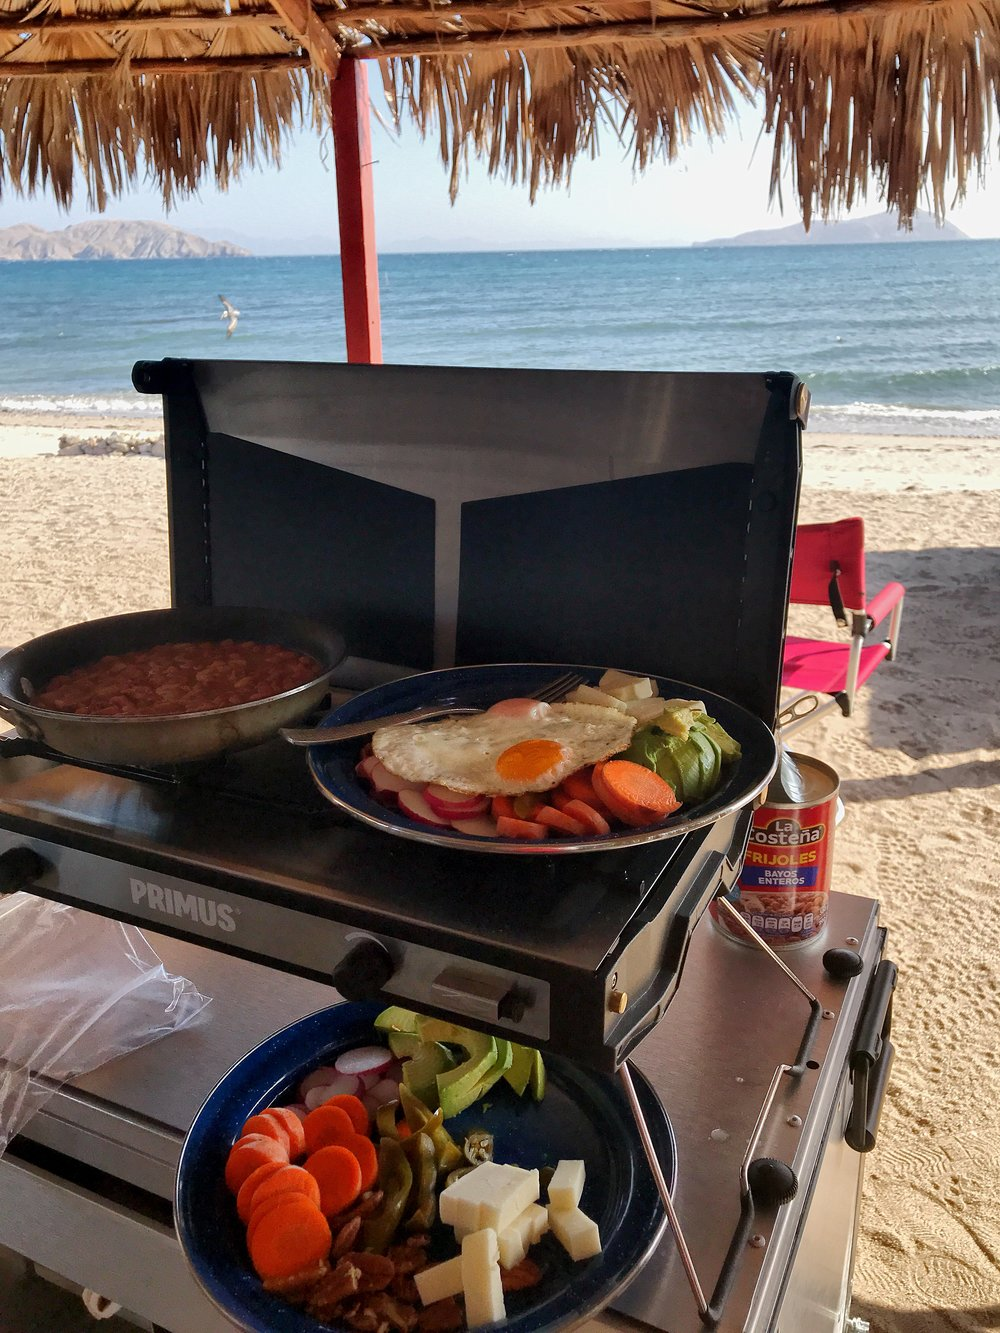 Our standard breakfast- fresh carrots, radishes, cheese, jalapeños, avocado, beans, and a couple eggs on top. Fuel to get through the grueling days at Bay of LA.